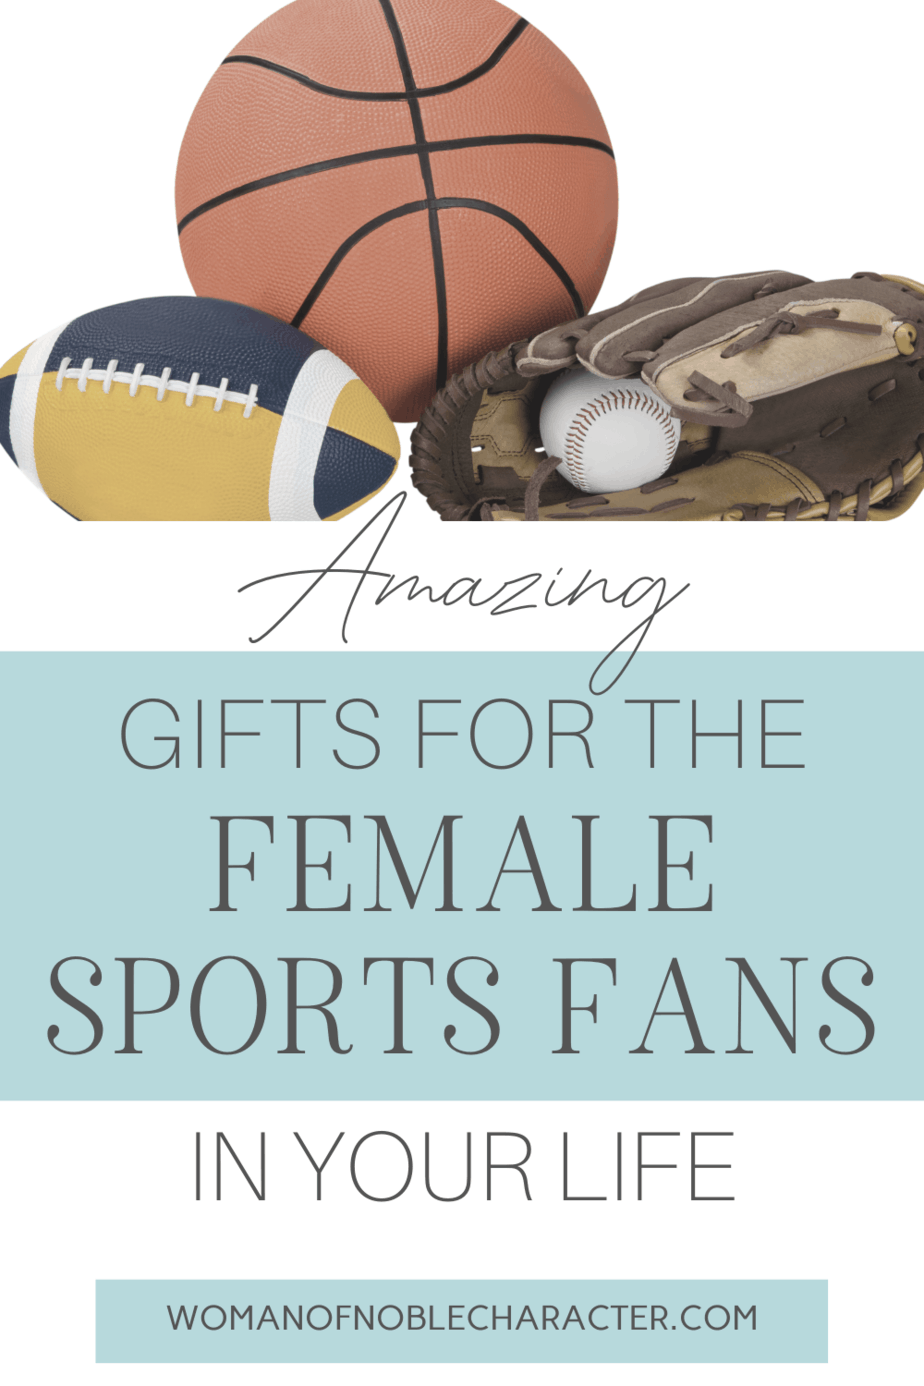 Find the best kinds of gifts for the female sports fan in your life. Whether it be jerseys, mugs, or hats, you'll find great ideas for the sports enthusiast in your life.